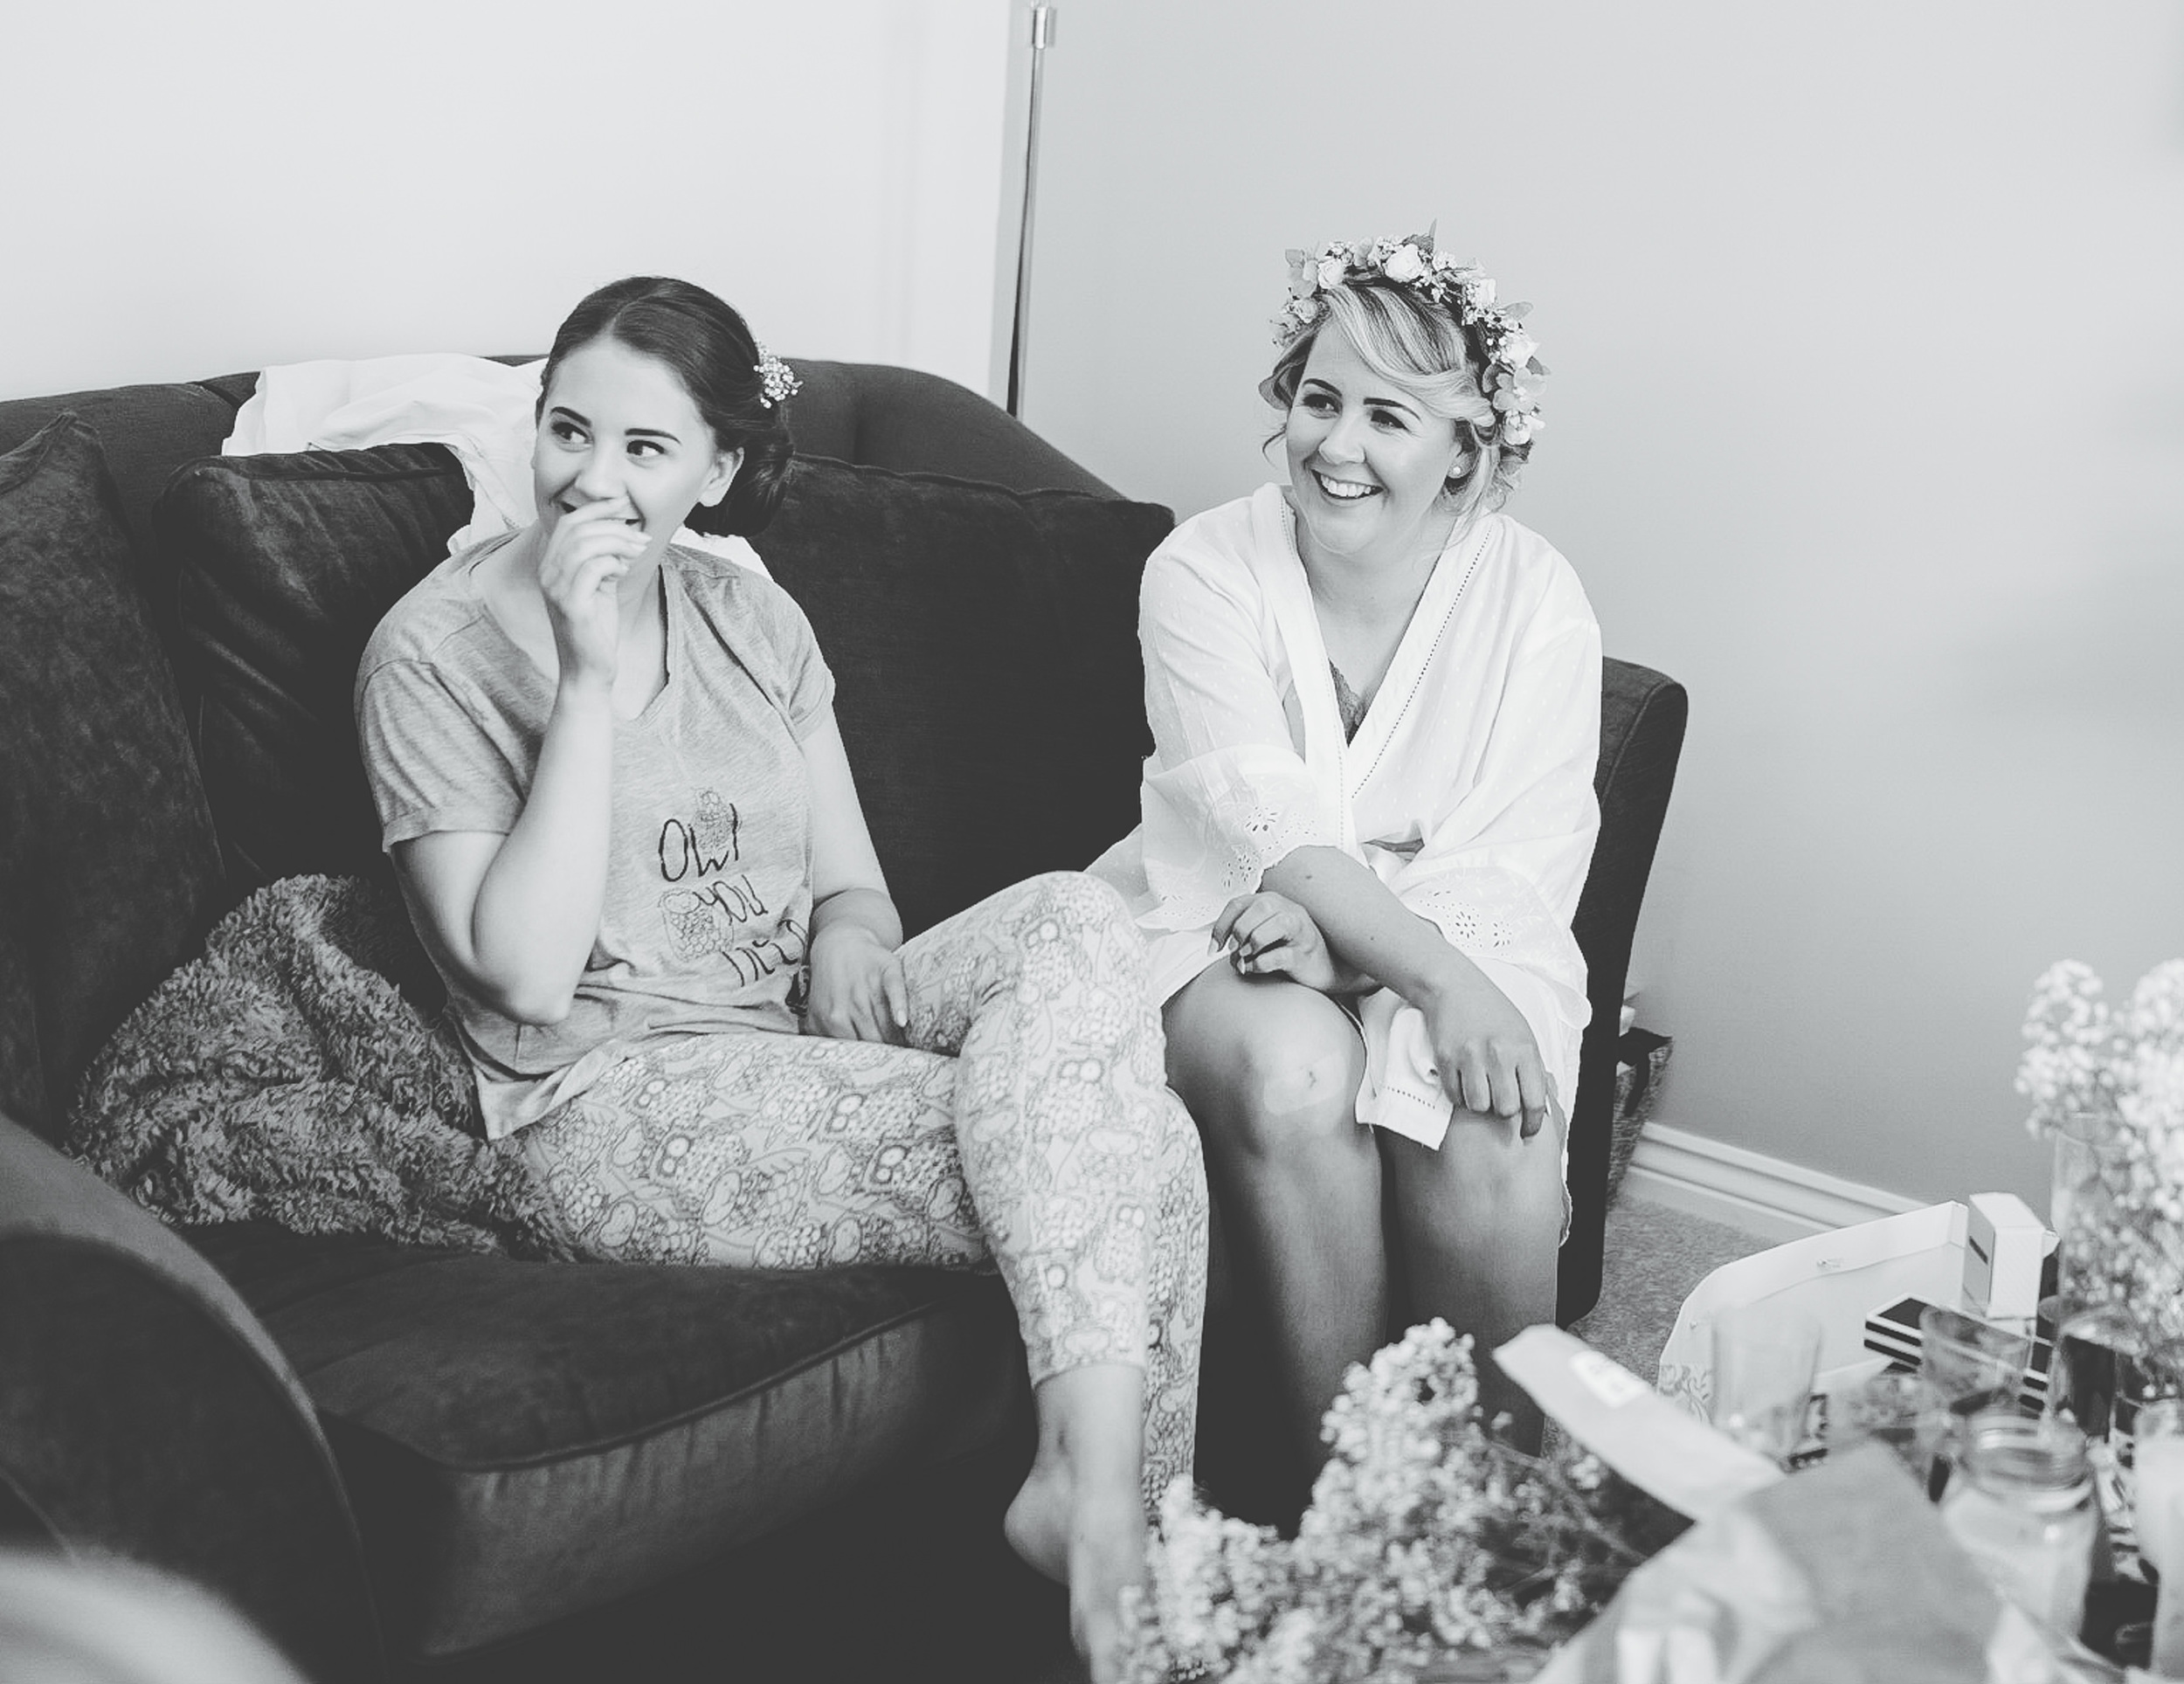 documentary wedding photographer North West - brides prep